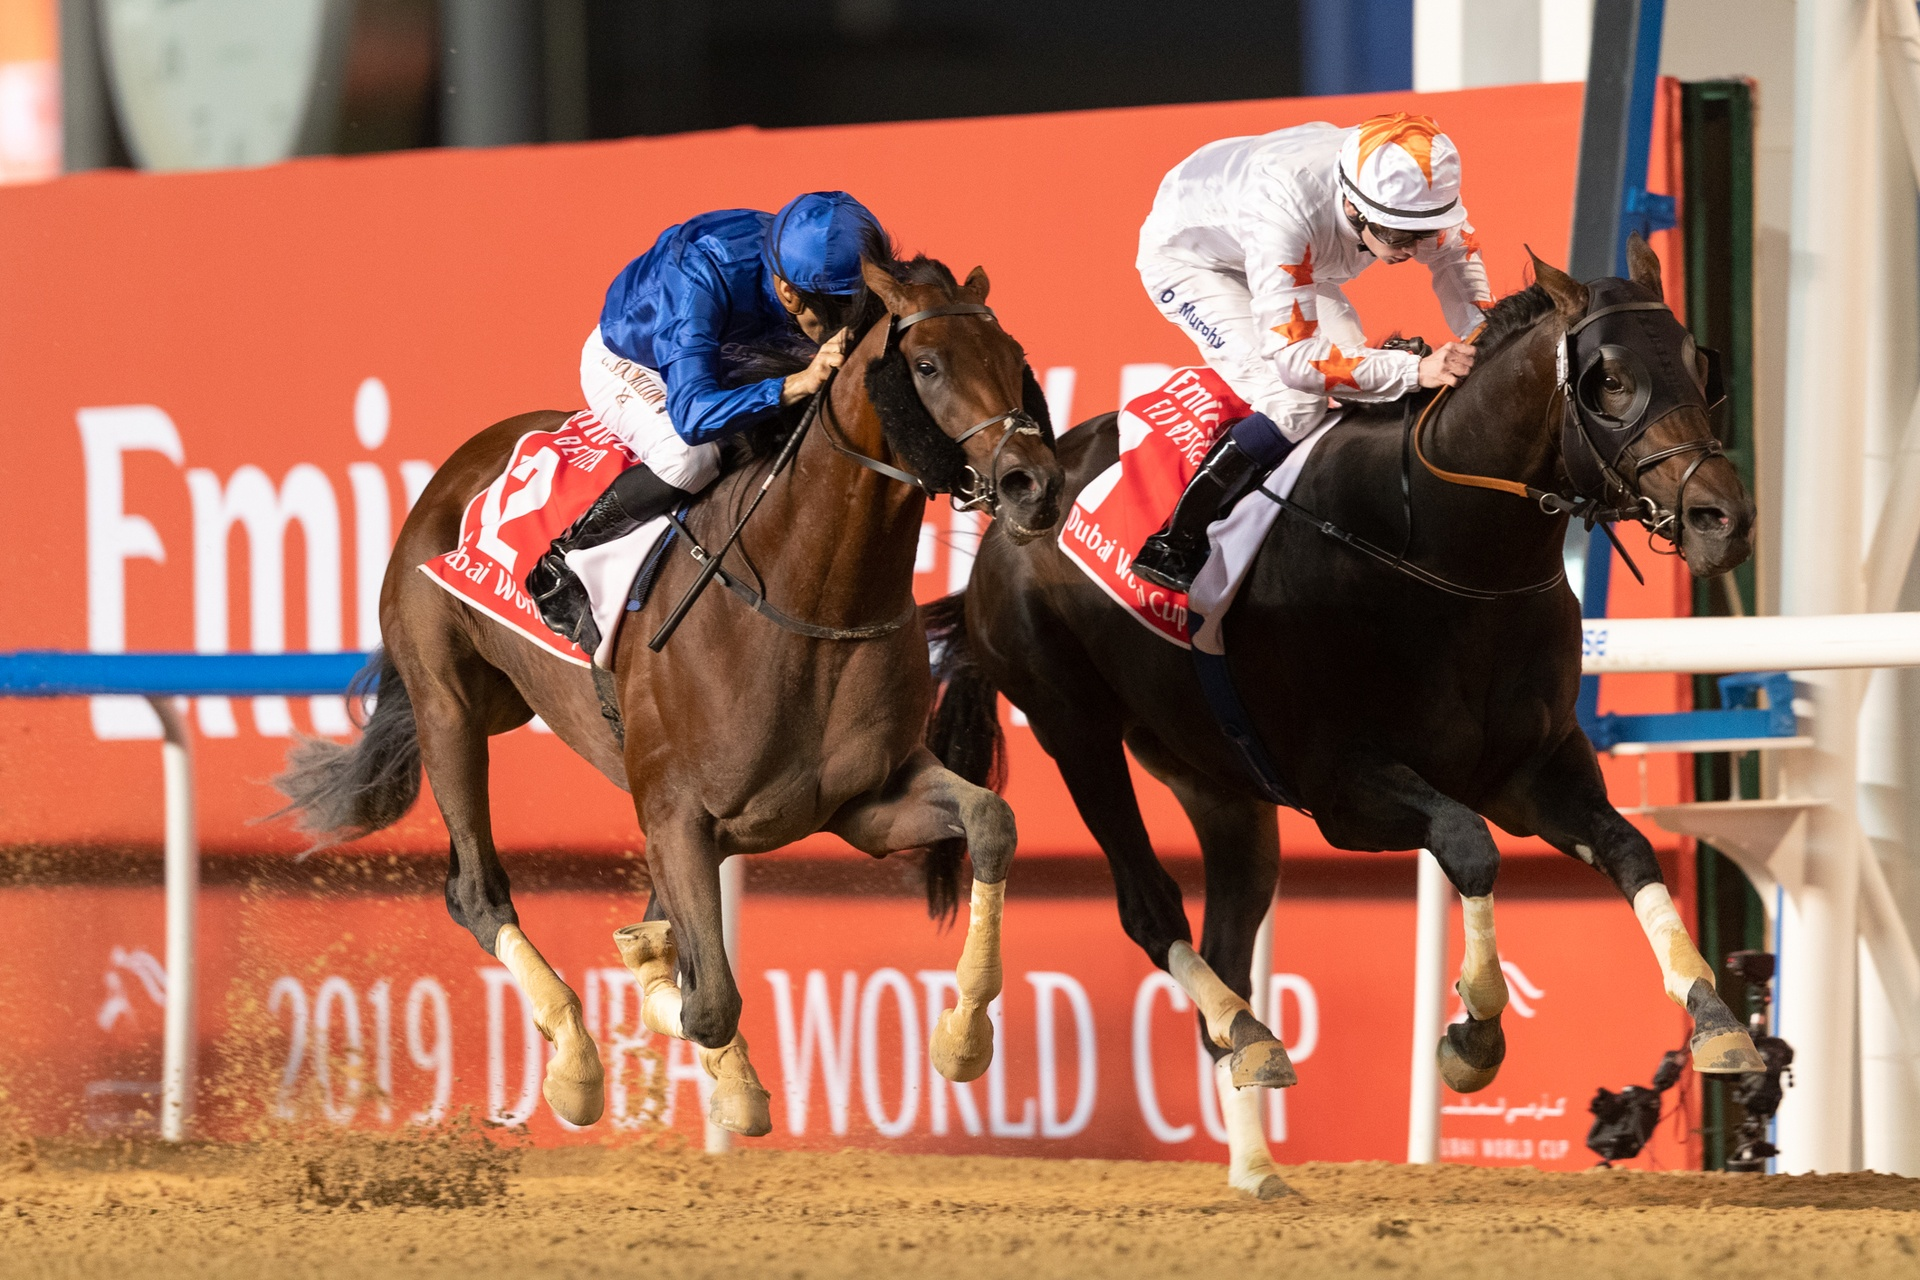 FORTY BROADCASTERS TO SHOWCASE US$26.5M DUBAI WORLD CUP FIXTURE